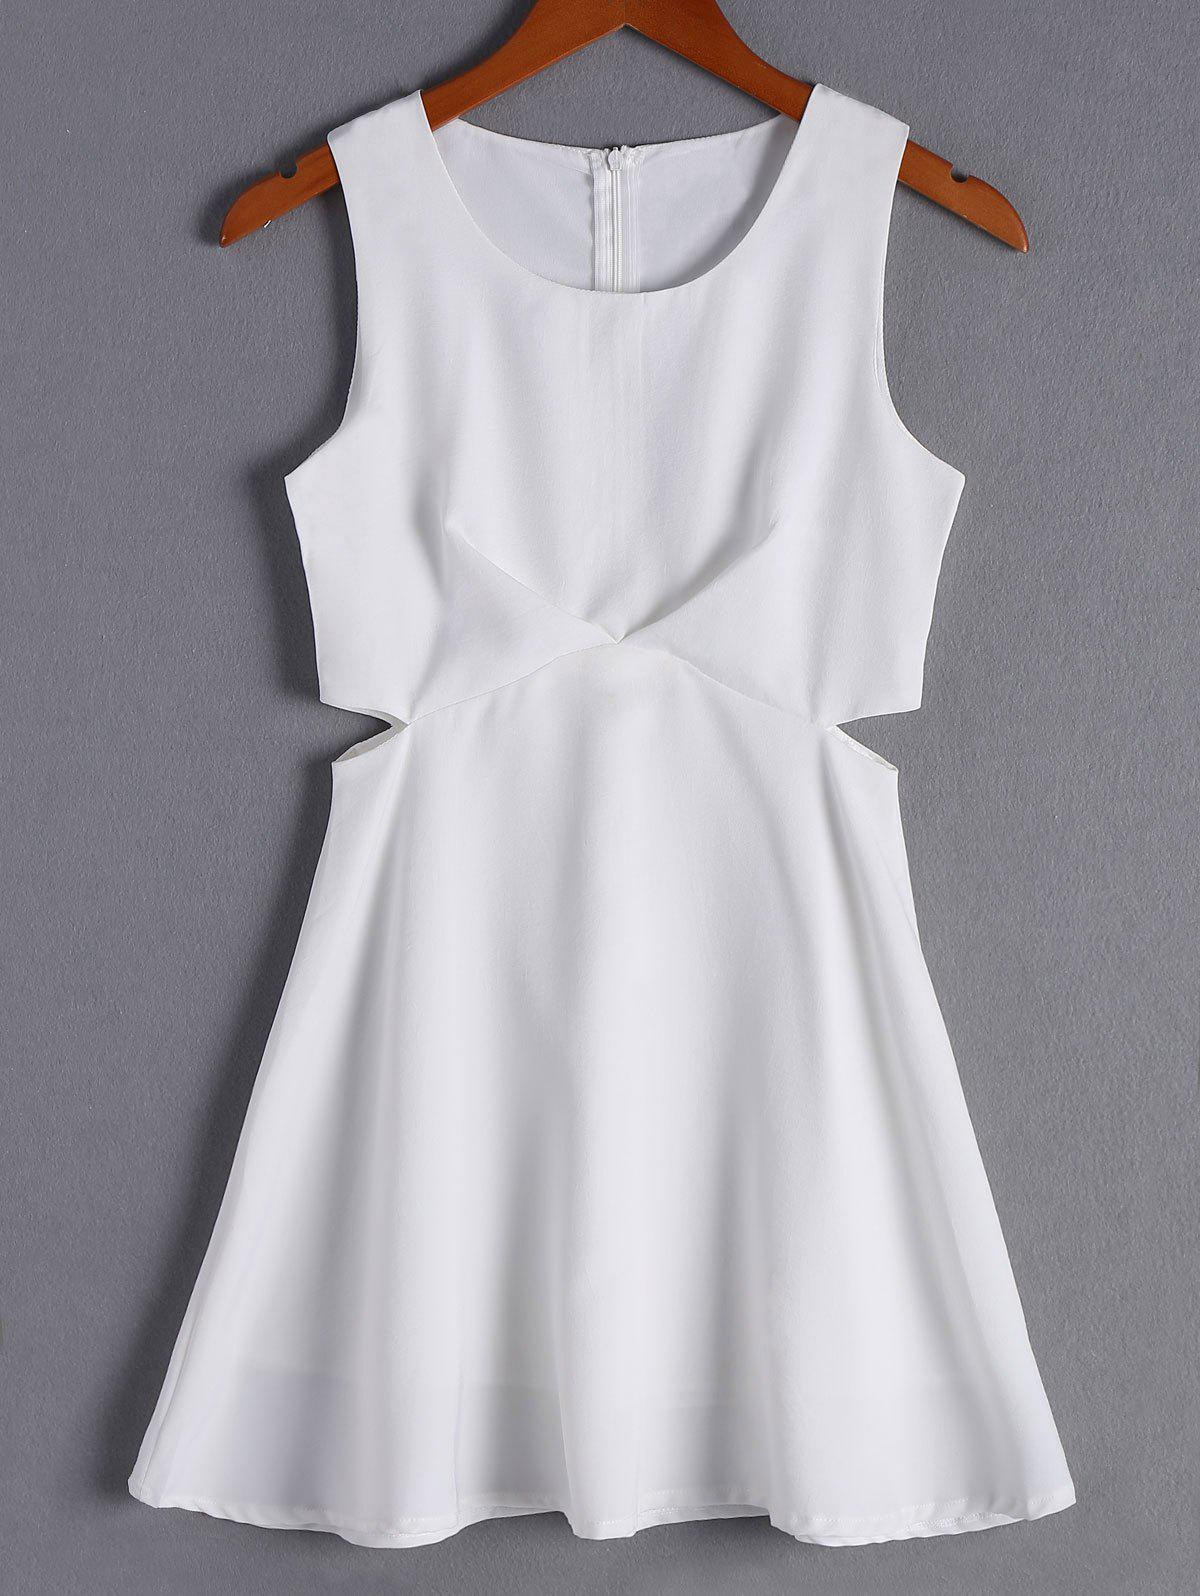 Simple Women's Solid Color Scoop Neck Cut Out Sleeveless Flare Dress - WHITE M